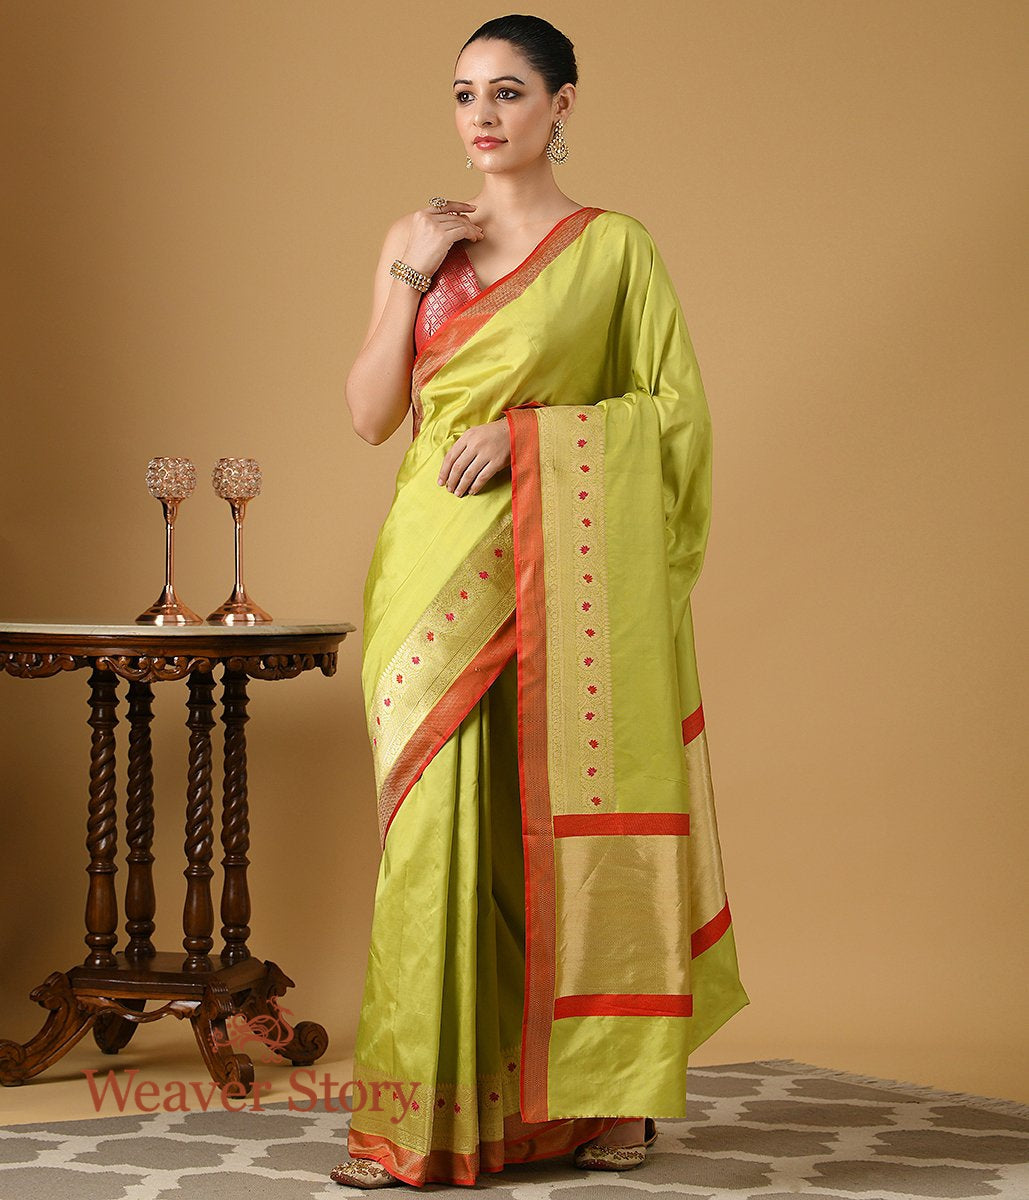 Handwoven Pista Green Banarasi Saree with Floral Border in Gold and Red